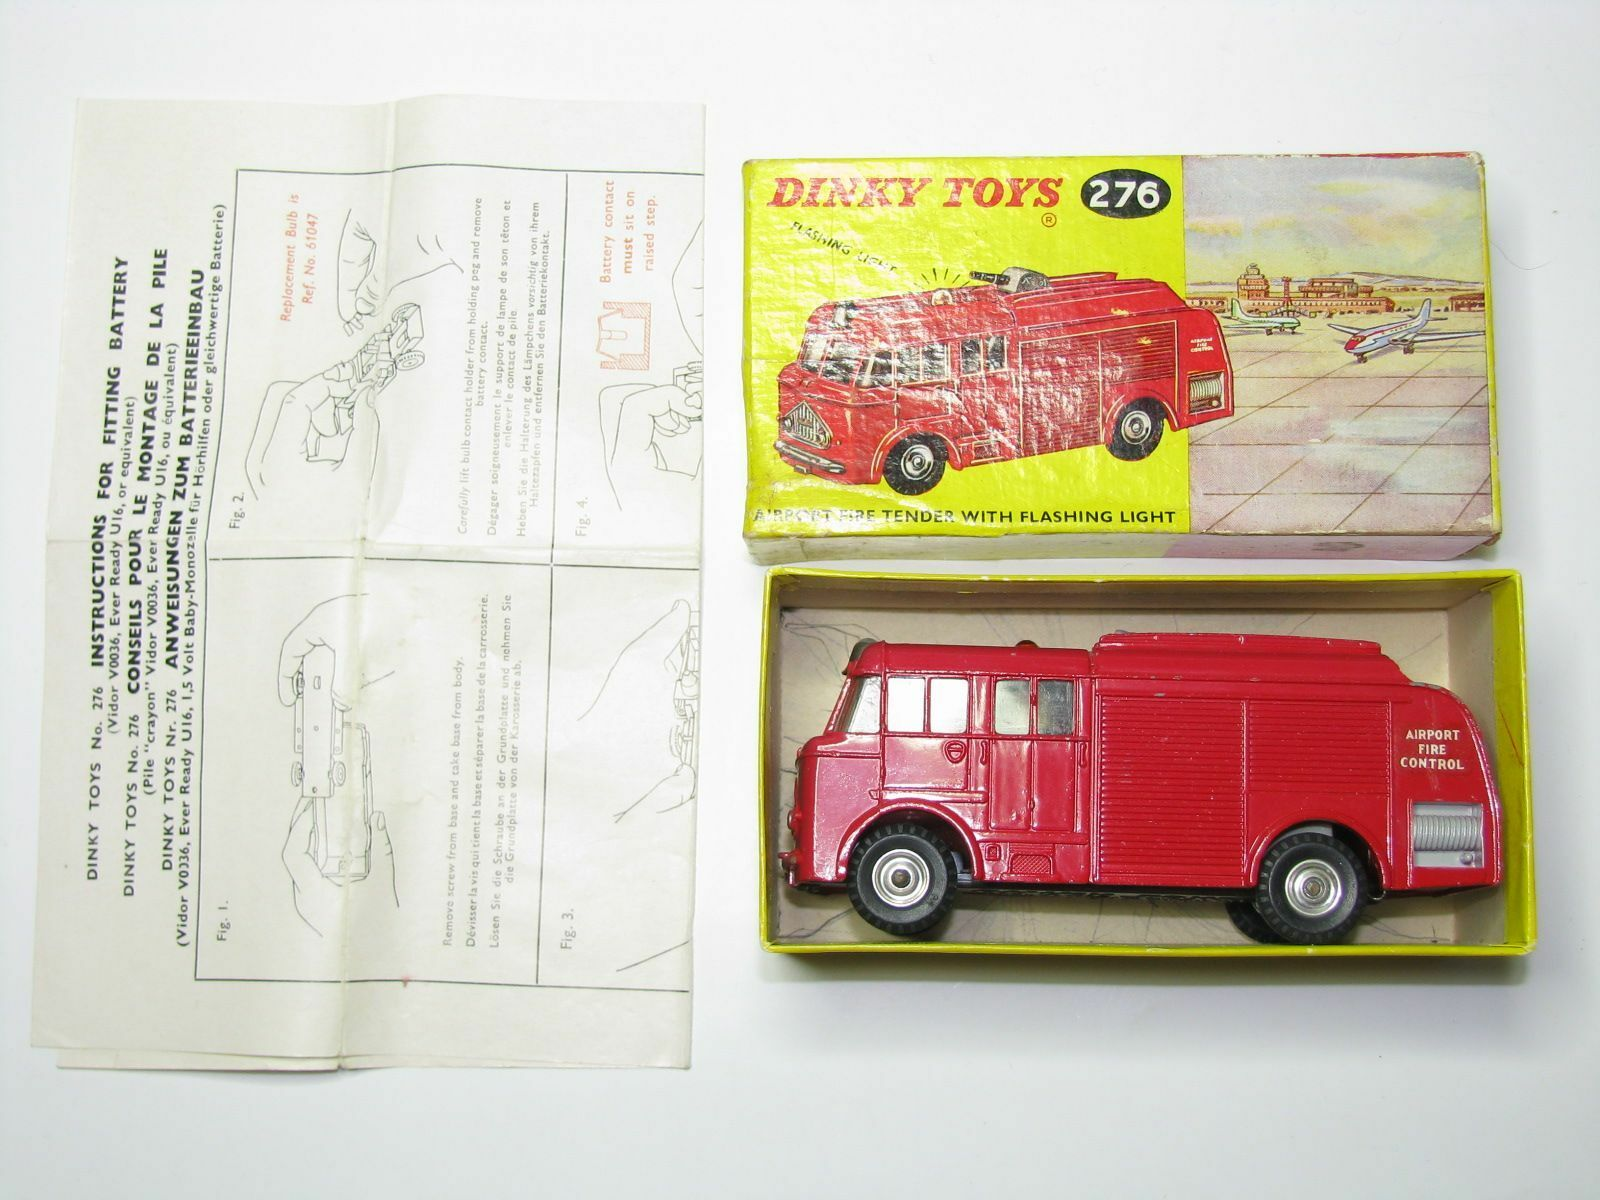 DINKY TOYS N°276 VINTAGE Airport Fire Tender  NMINT CONDITION + ORIGINAL BOX